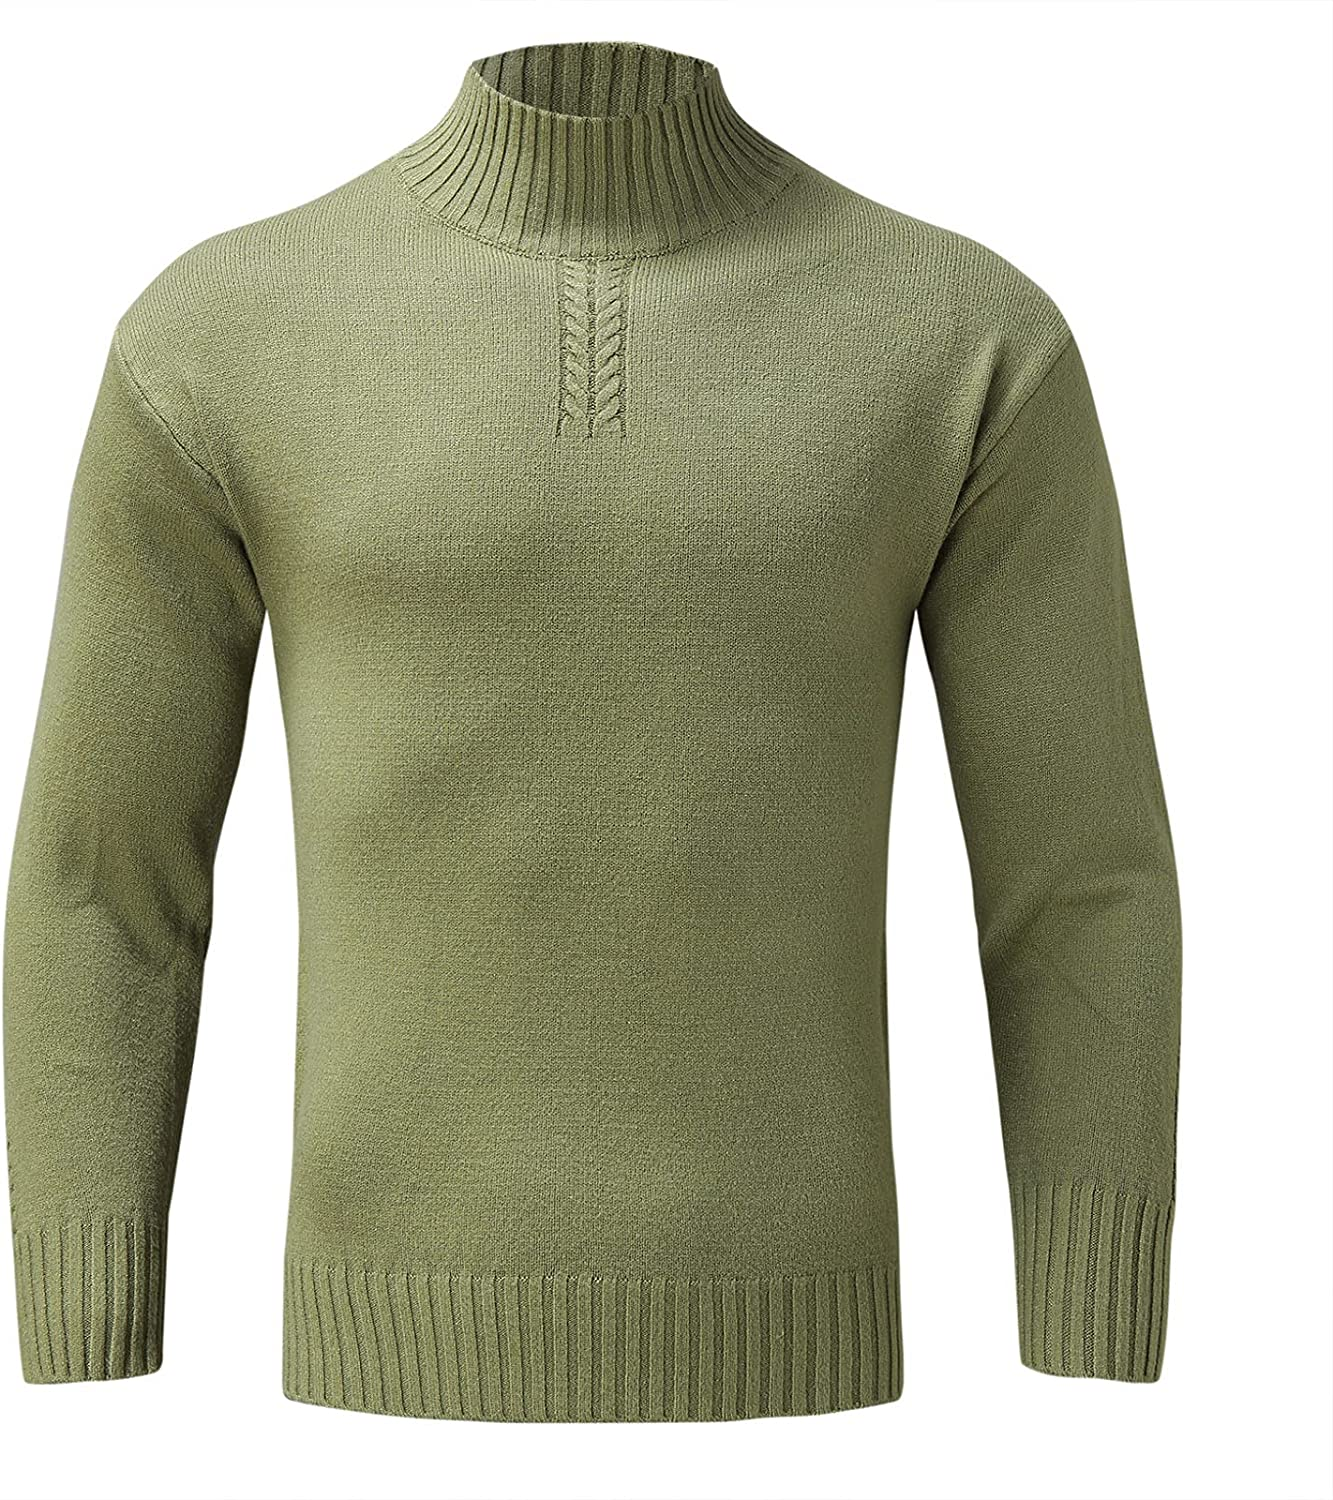 Men's Sweater Pullover Autumn Winter Solid Color Long Sleeve High Neck Slim Top Fashion Casual Winter Oversize 2021